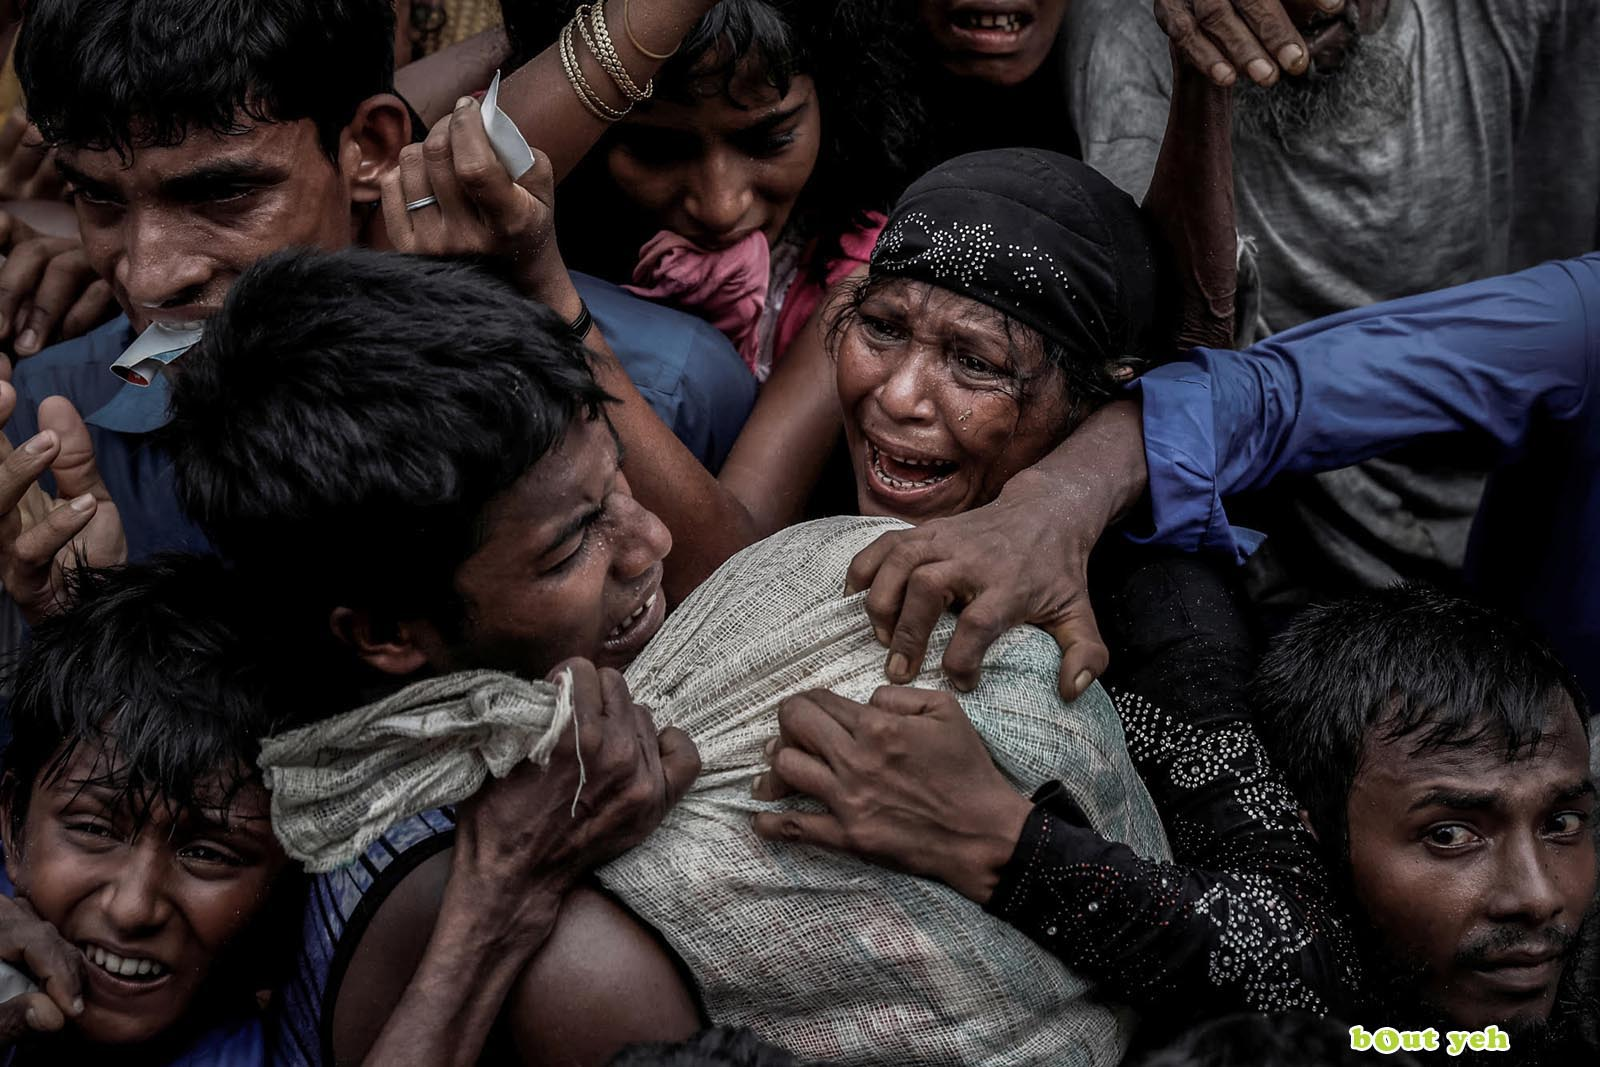 Rohingya refugees scramble for aid at a camp in Cox's Bazar, Bangladesh - photo by Cathal McNaughton shared by Bout Yeh photographers Belfast